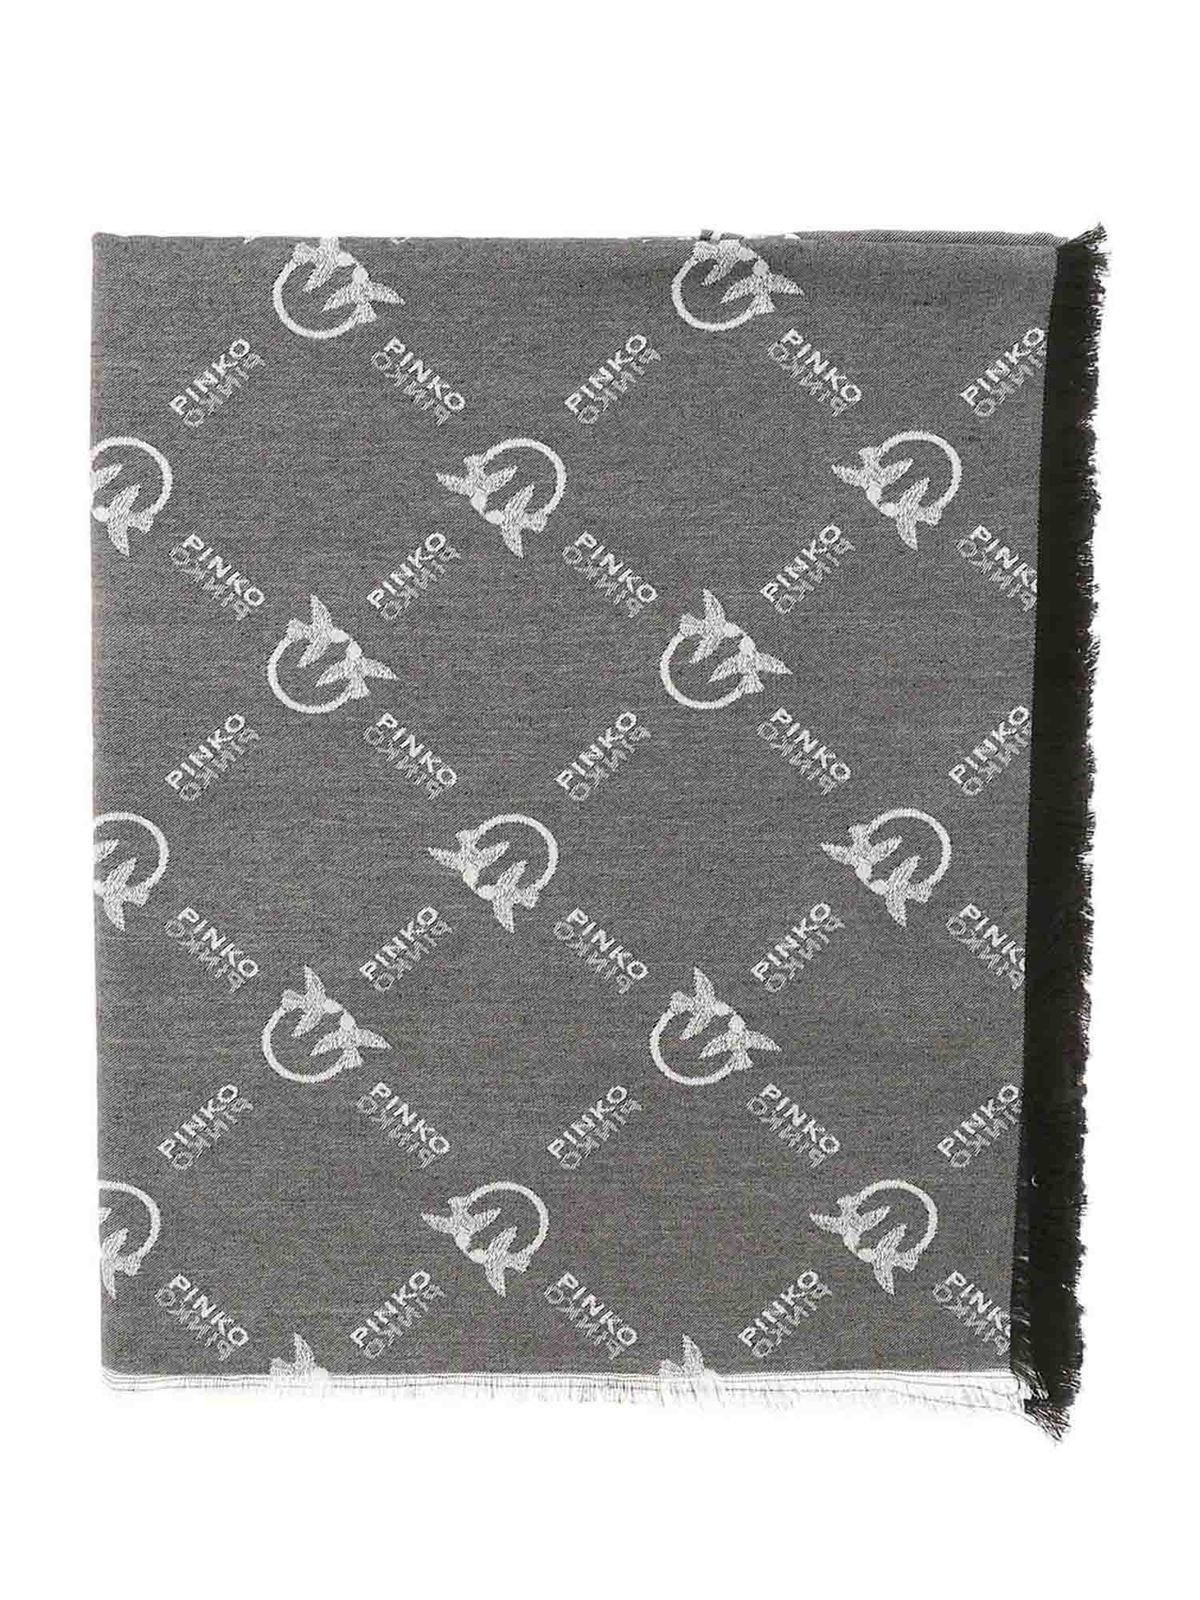 Pinko Brevis 1 Scarf In Black And White